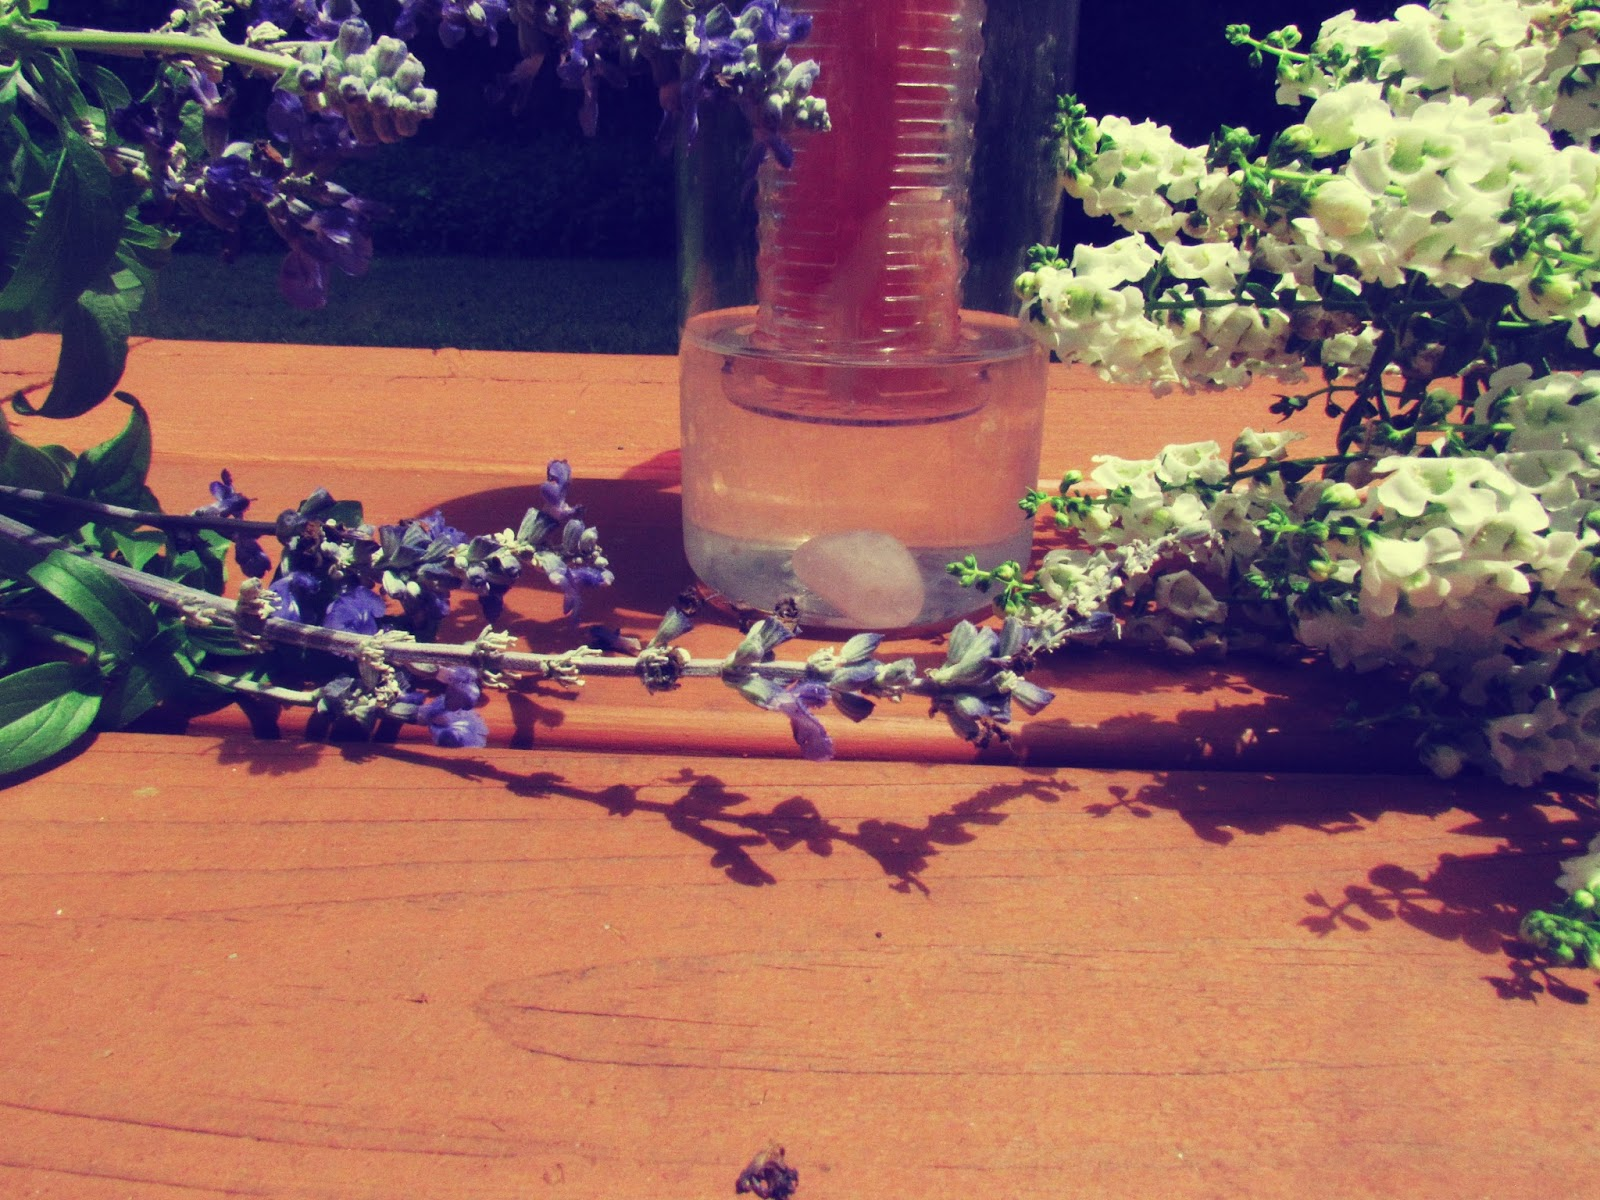 Fruit Infuser Water Bottle + Healing Stones and Lavender Flowers